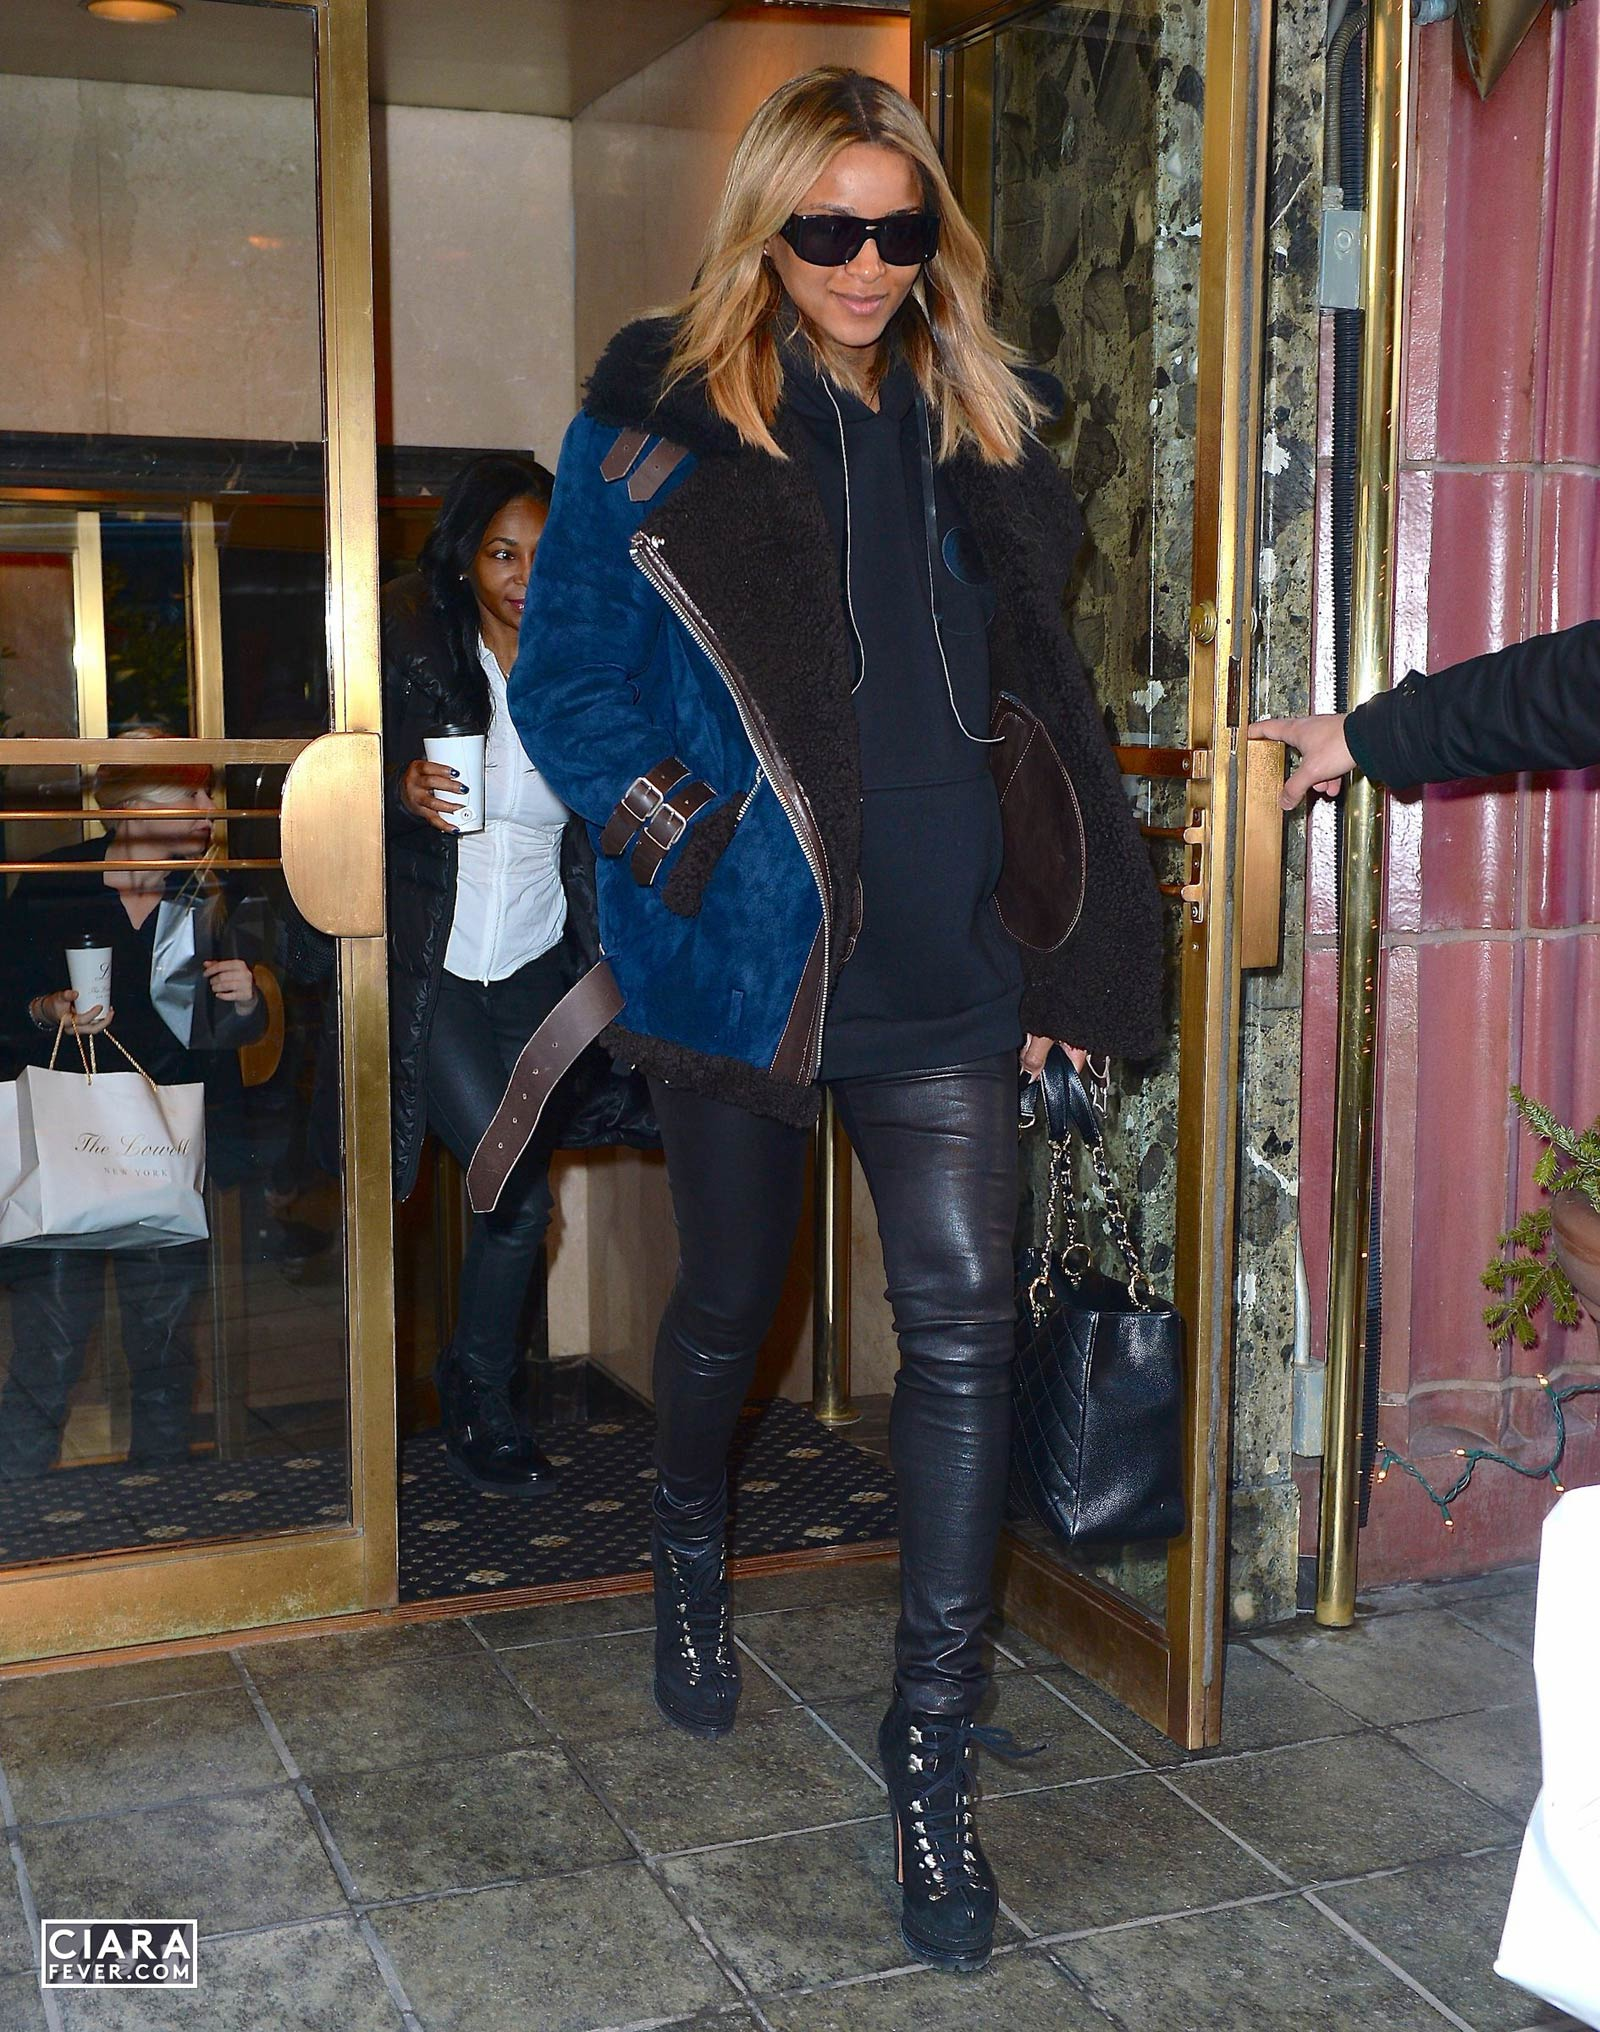 Ciara heads to the airport in New York City